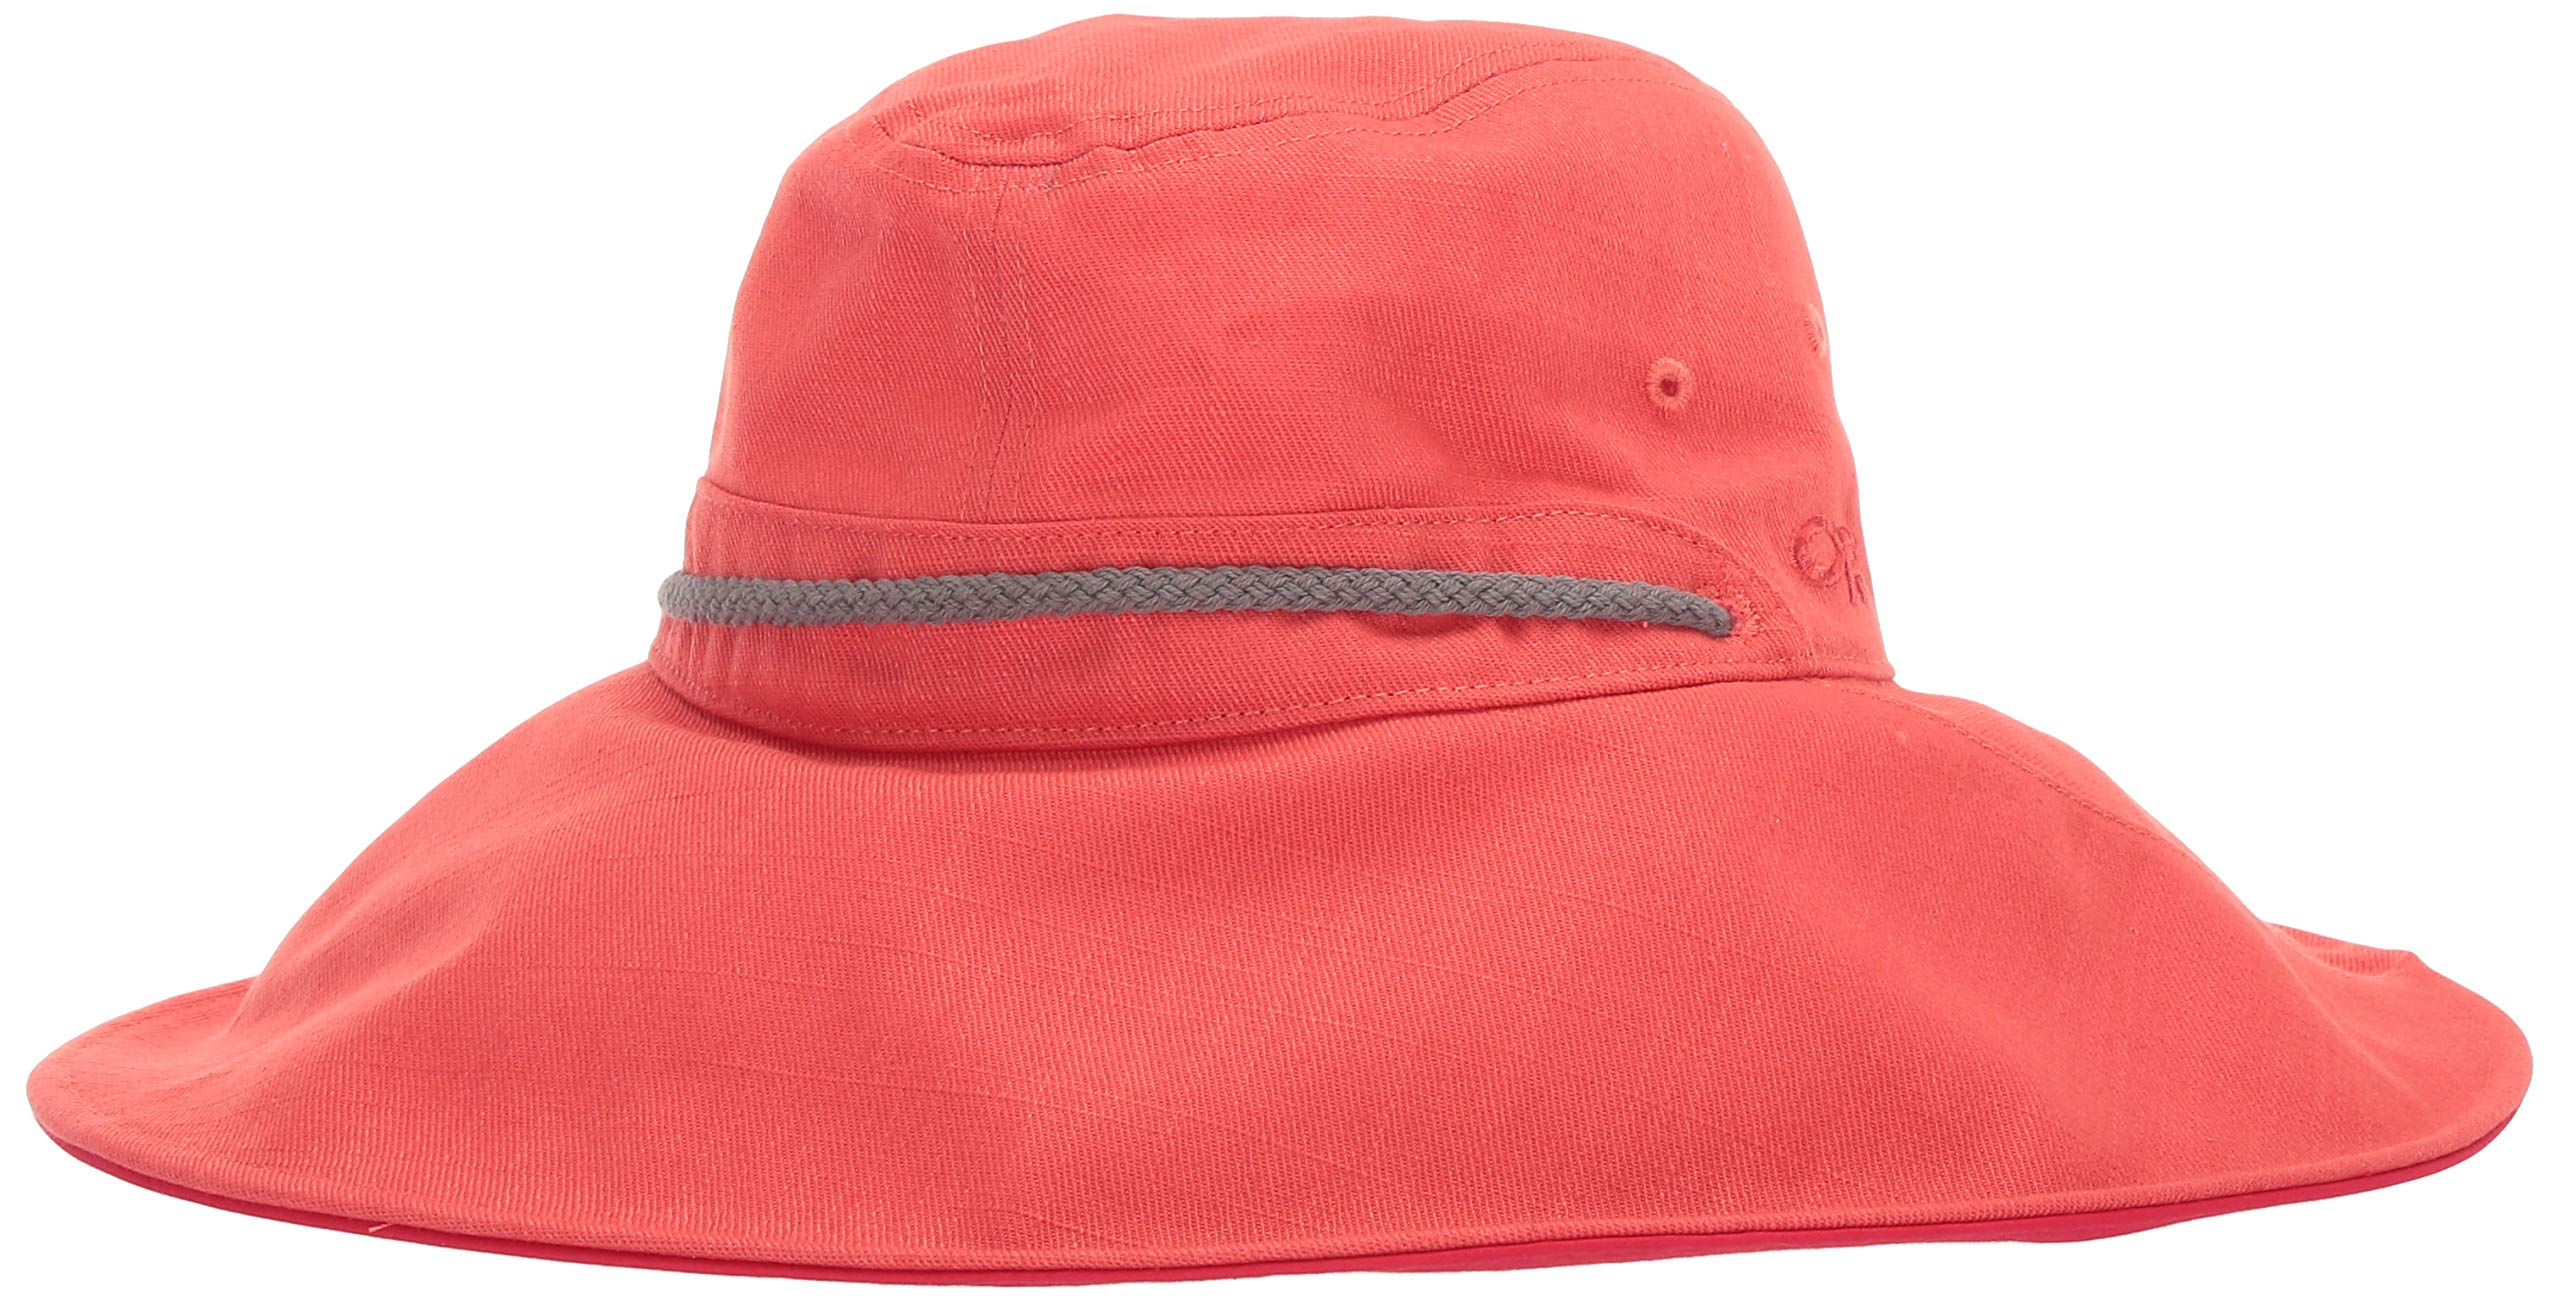 Outdoor Research Women's Mojave Sun Hat, Washed Paprika, Large/X-Large